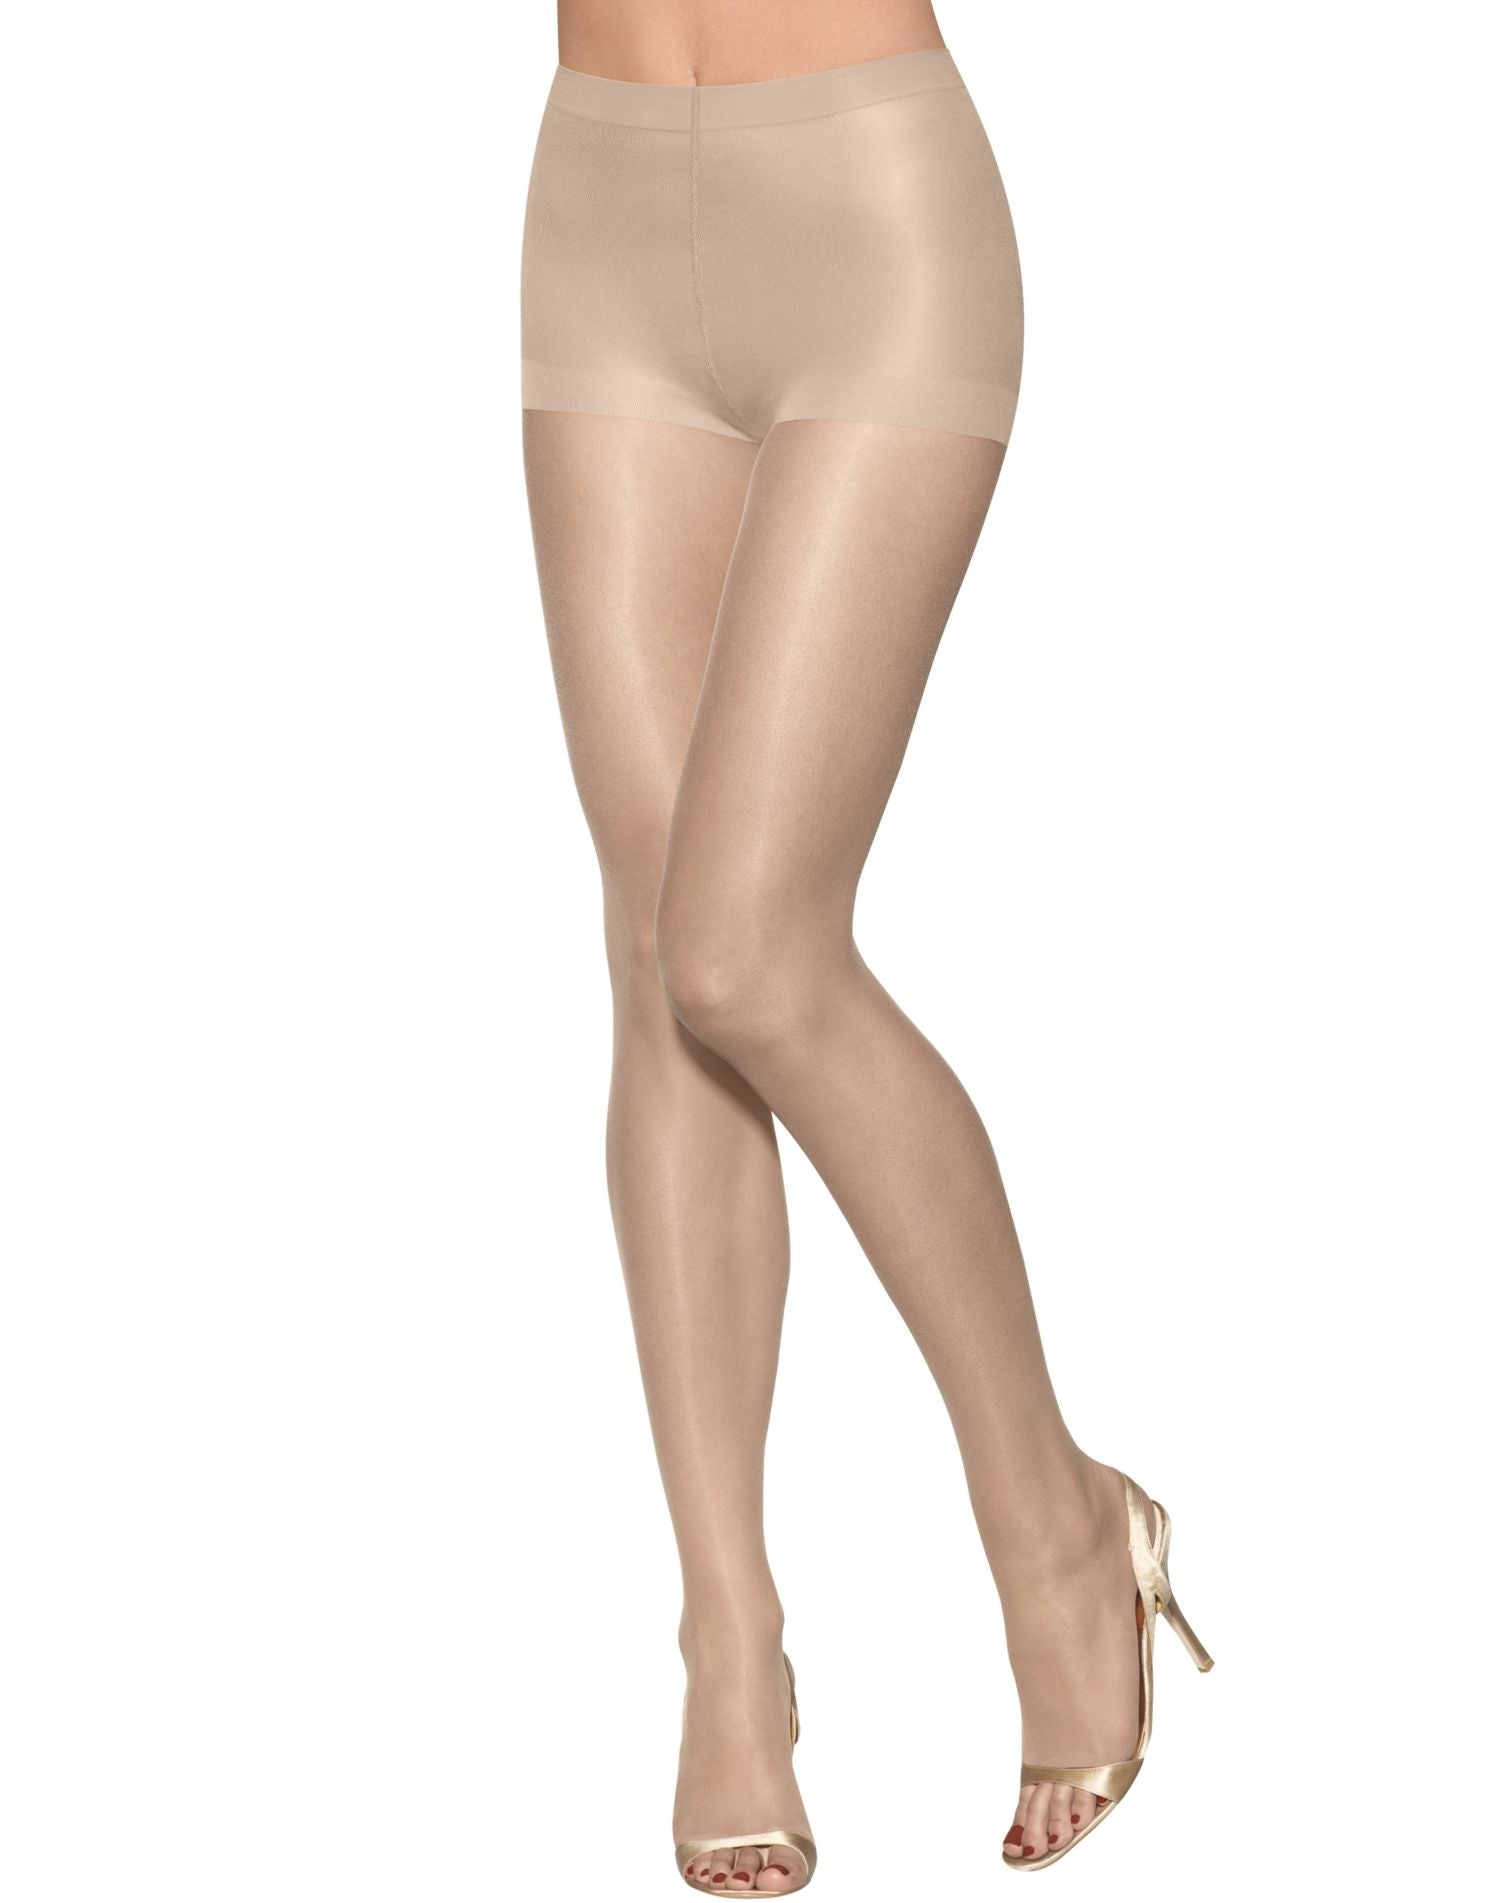 27a1c573e0d 0B376 - Hanes Silk Reflections Lasting Sheer Ultra Sheer Toeless Control  Top Pantyhose 1 Pair Pack – NY Lingerie